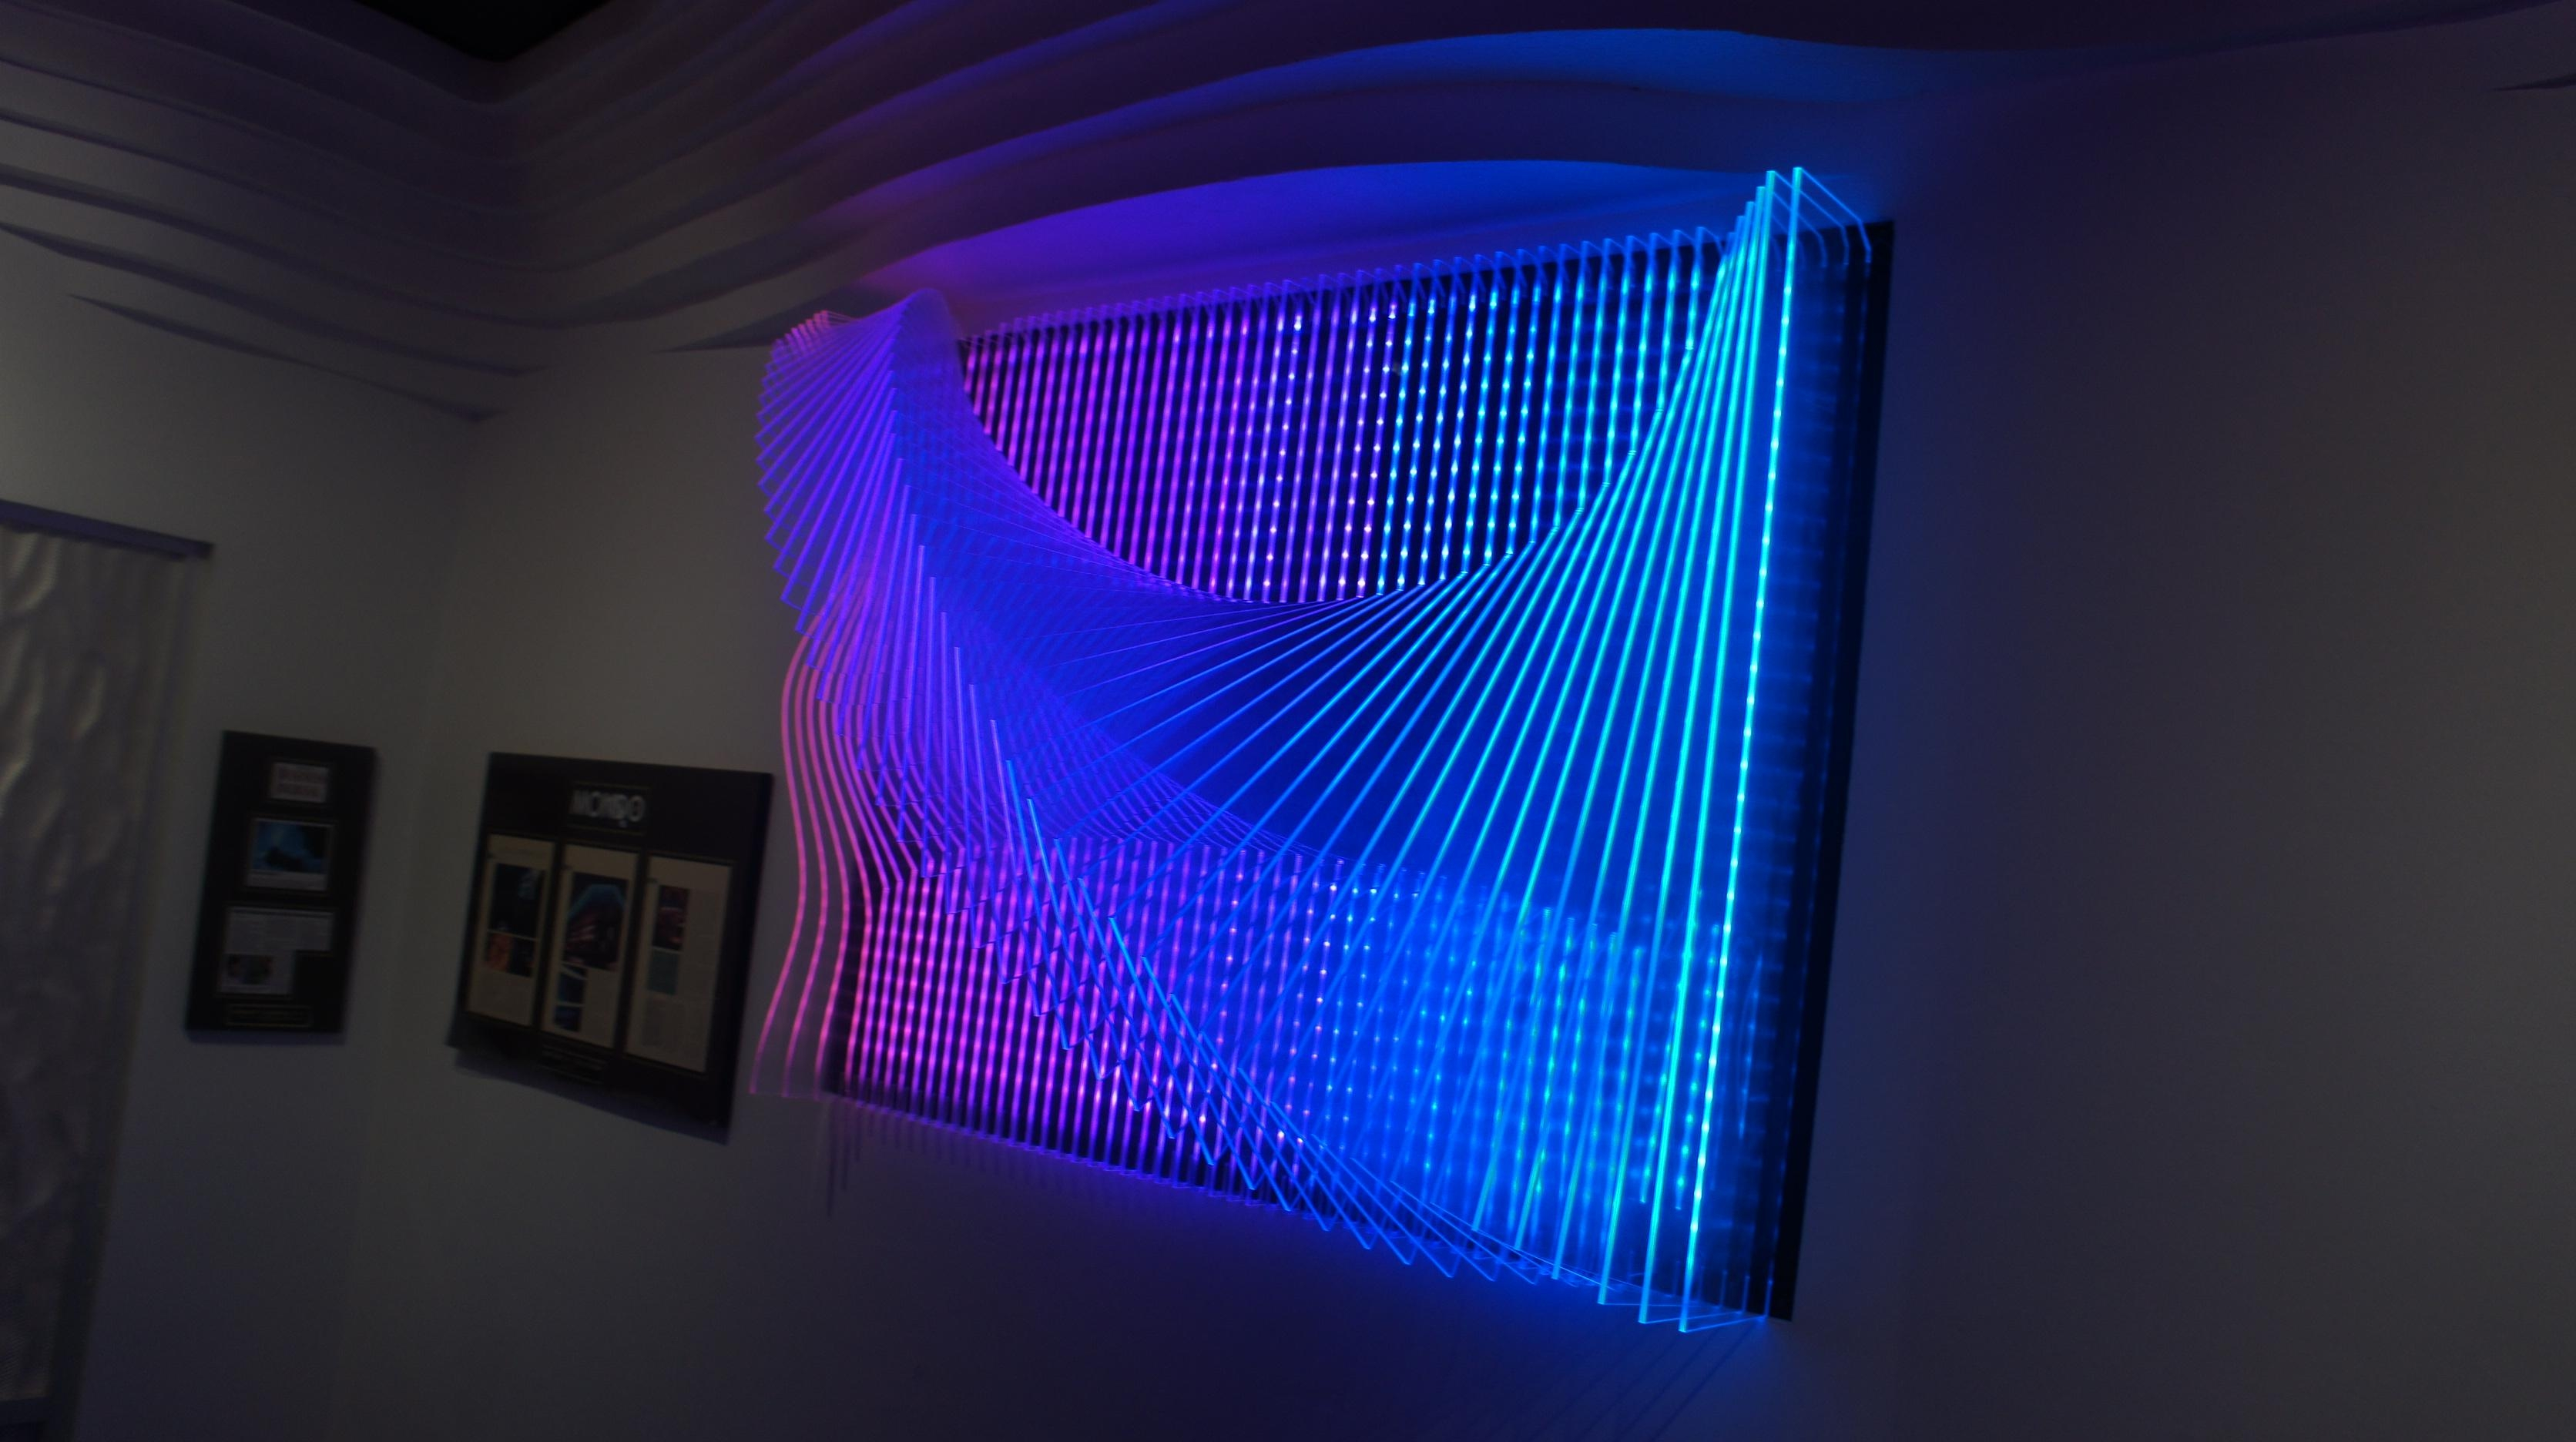 Wall Art With Led Lights – The Art Of The Future | Warisan Lighting Throughout Wall Art With Lights (Image 19 of 20)